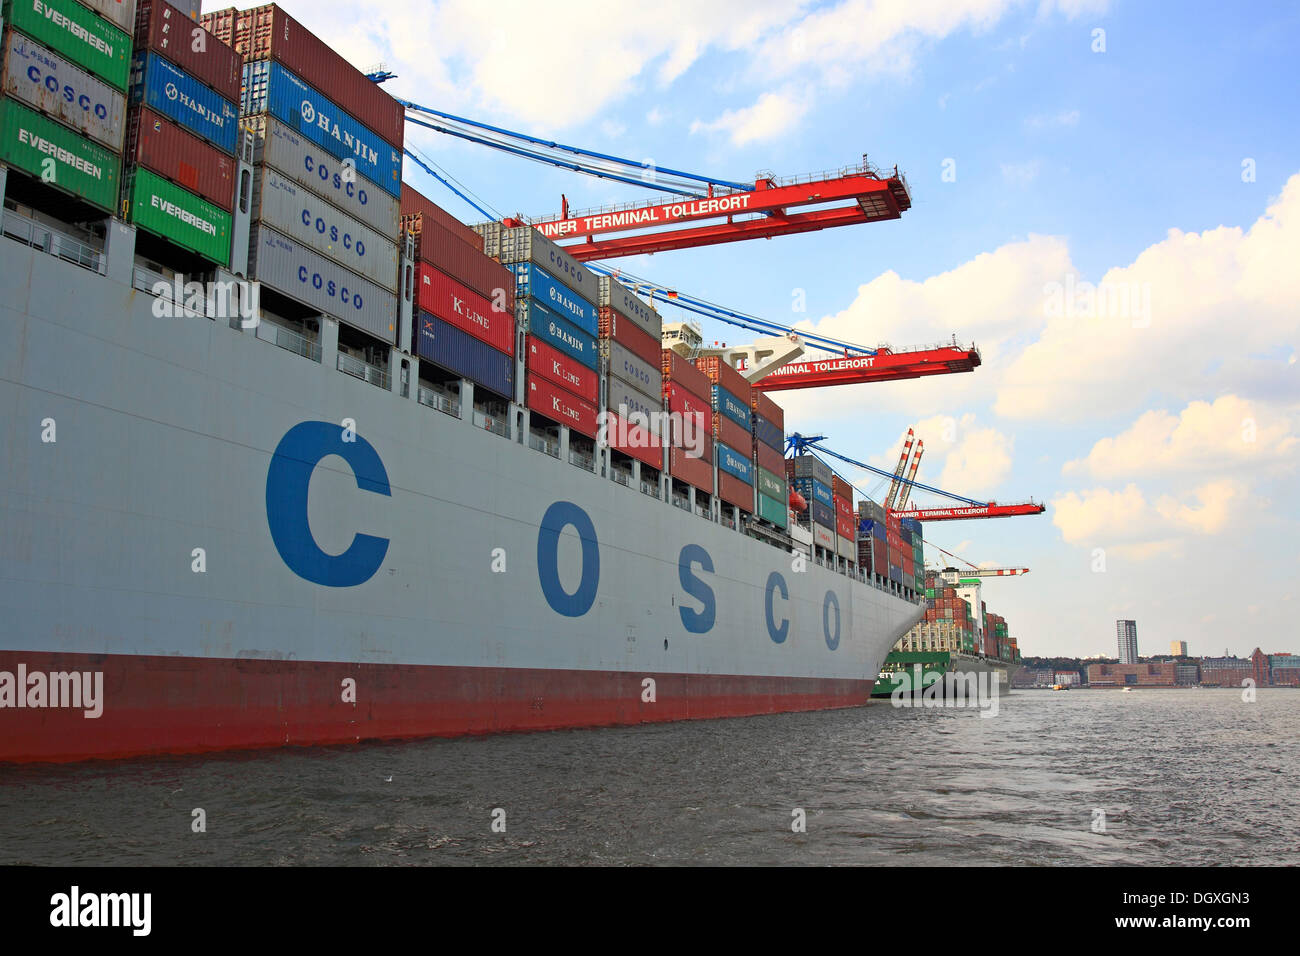 "Container ship ""Cosco"" being unloaded, container port, Port of Hamburg, Hamburg Stock Photo"